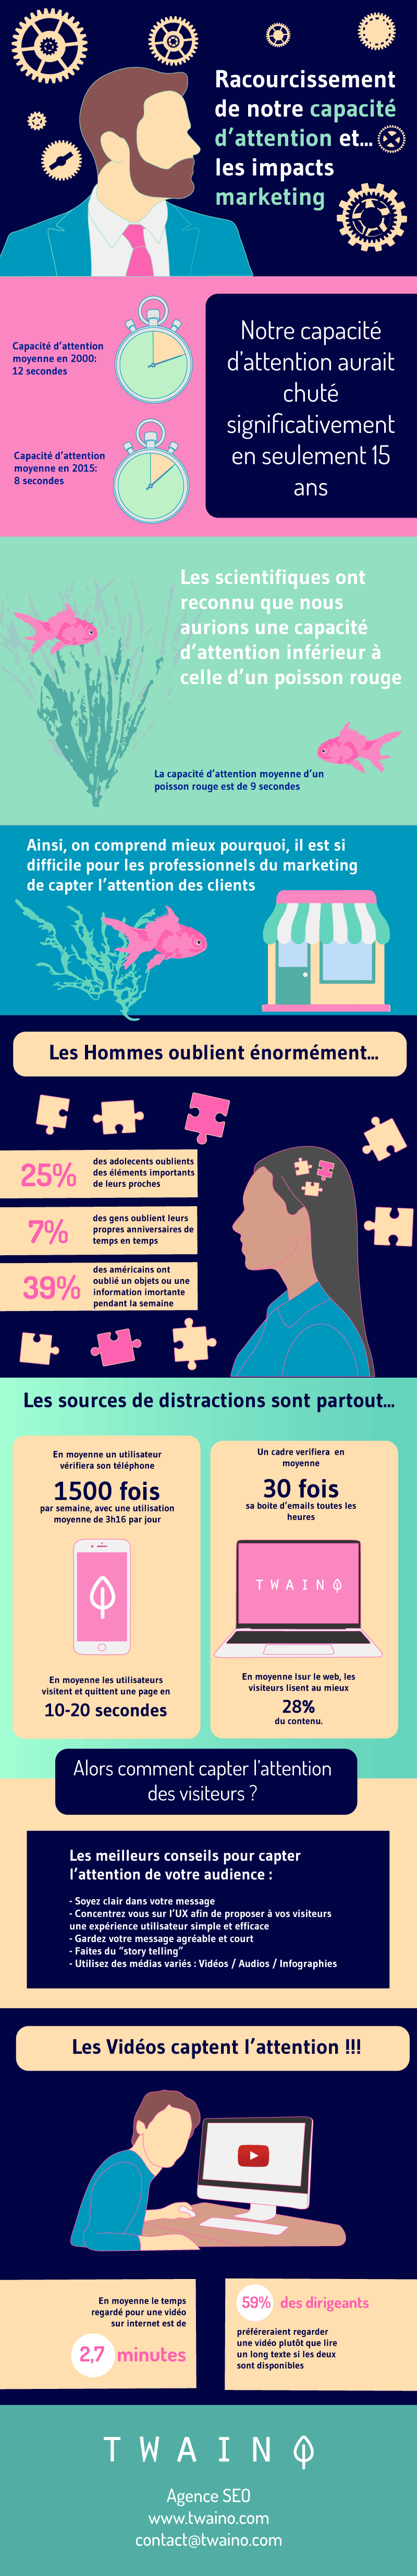 Racourcissement capacite attention impact marketing